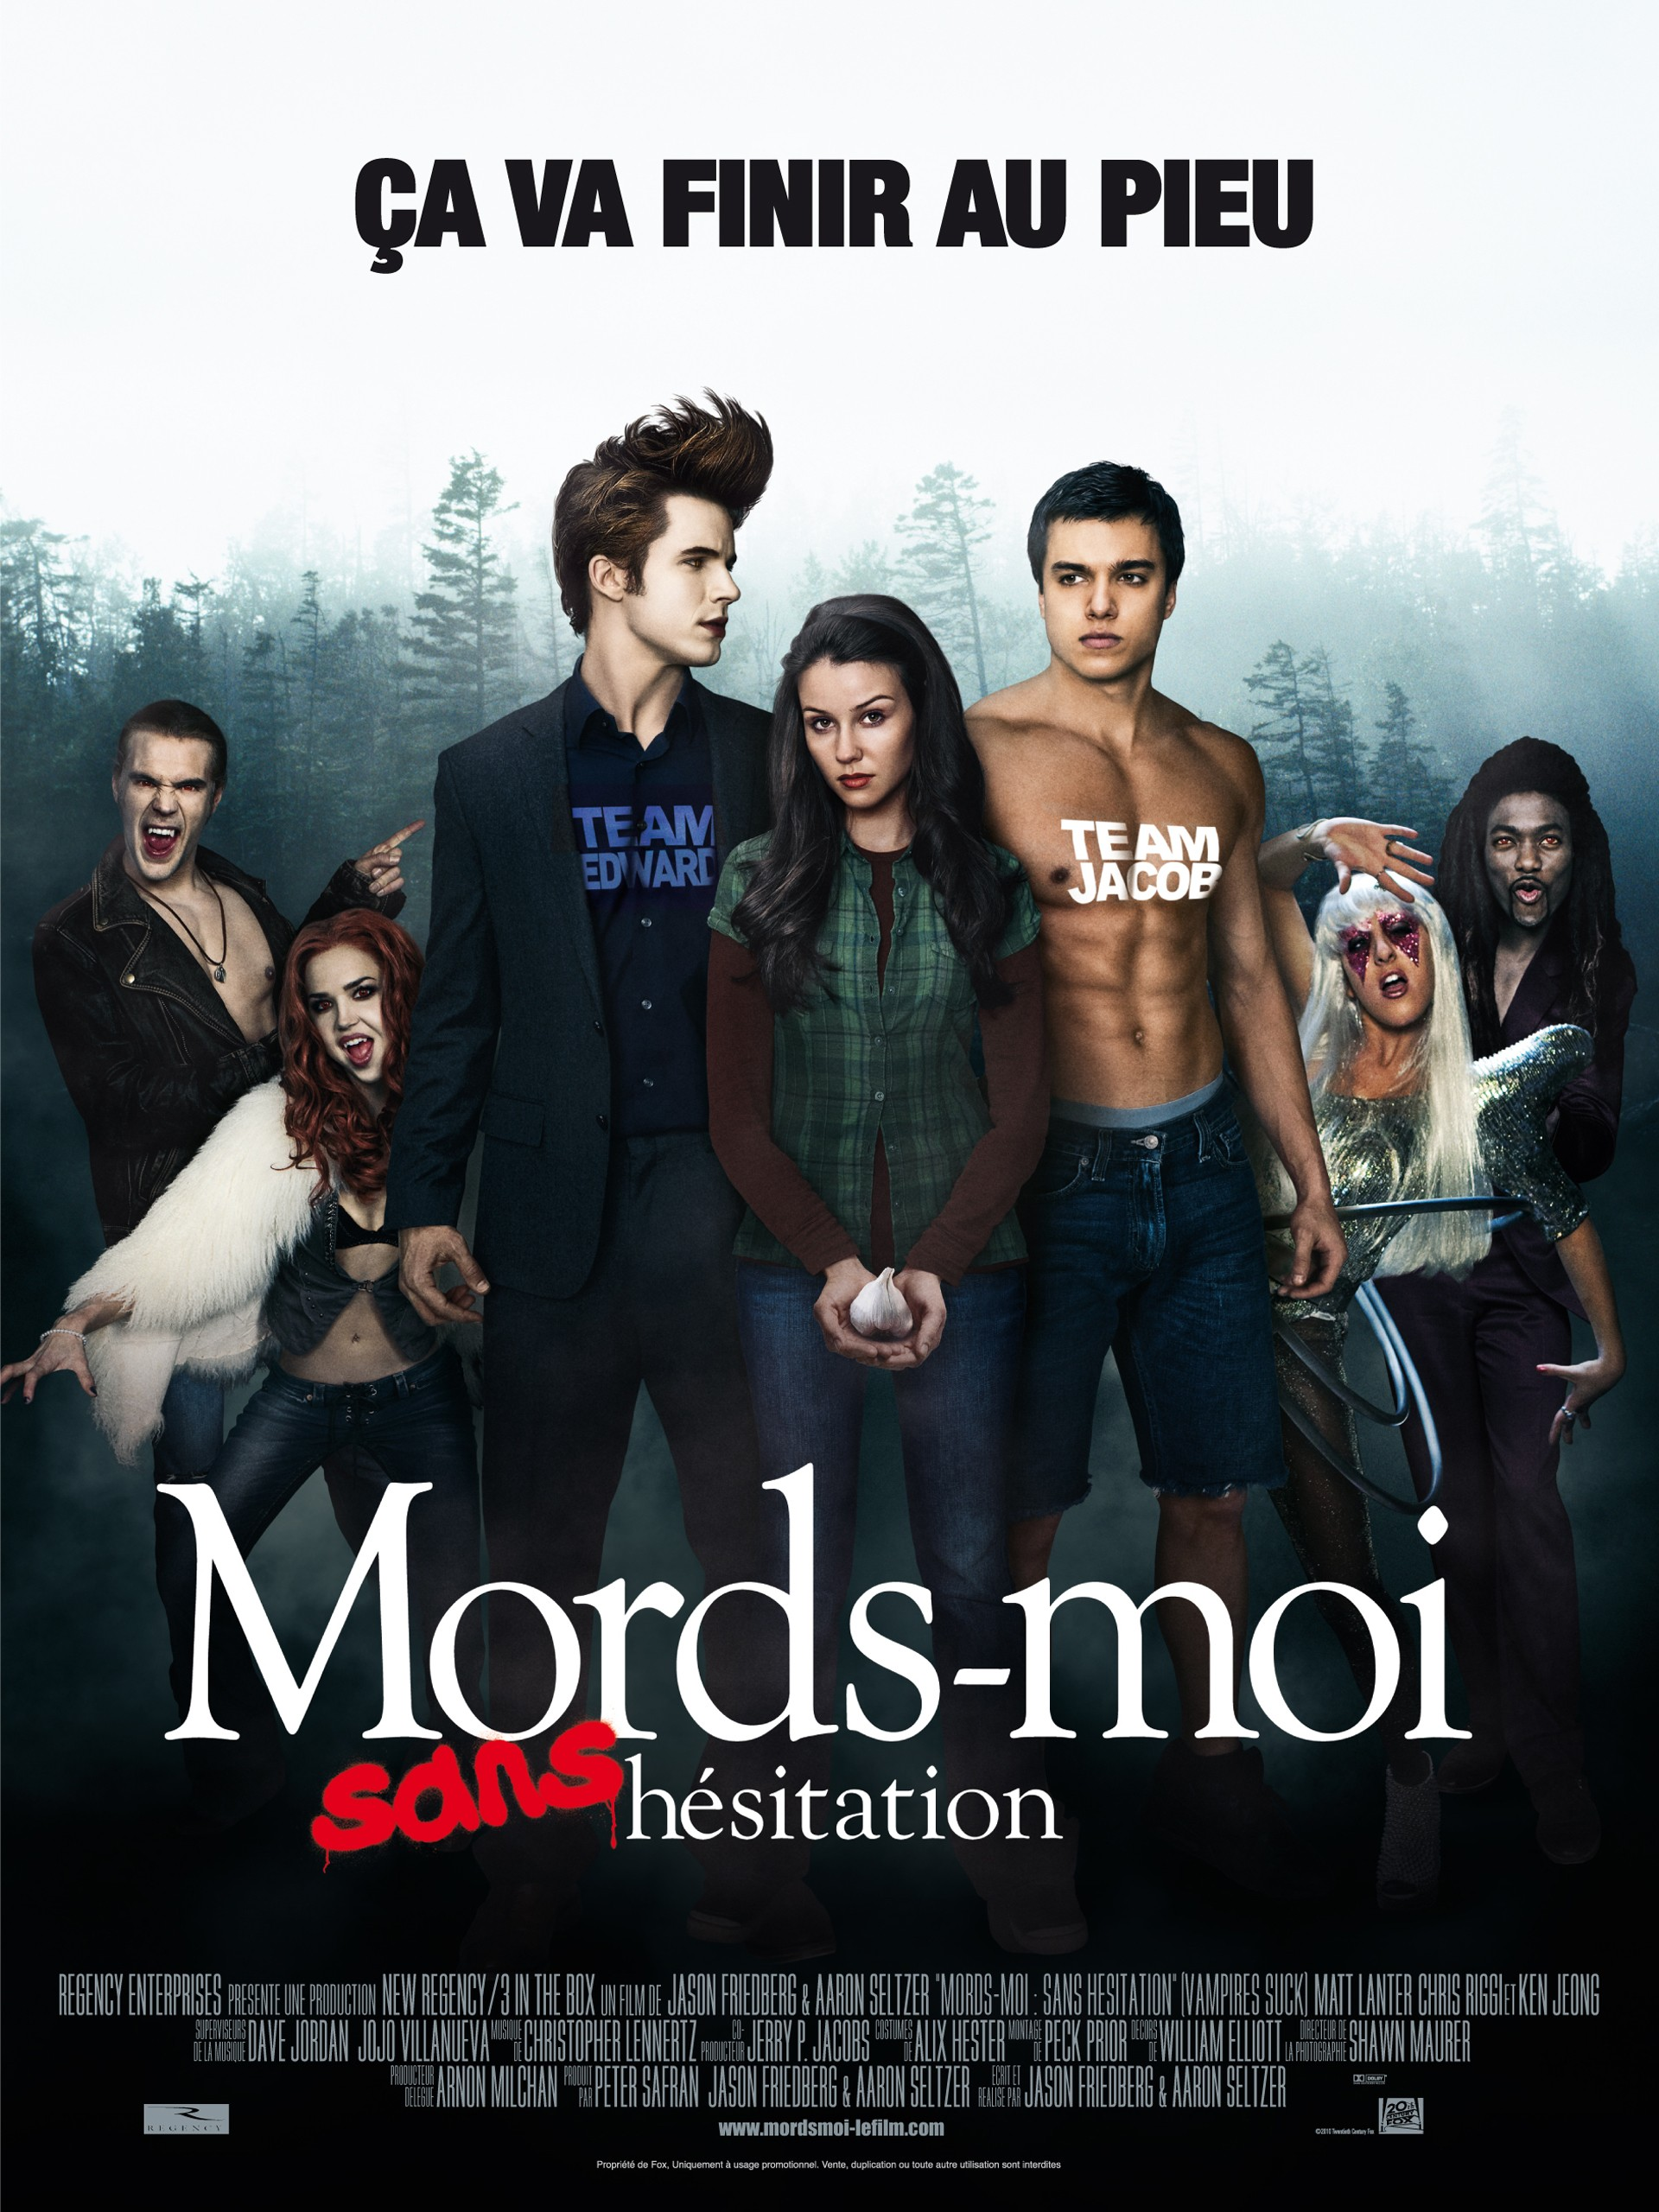 Mords-moi sans hésitation [BDRiP] [TRUEFRENCH] [MULTI]